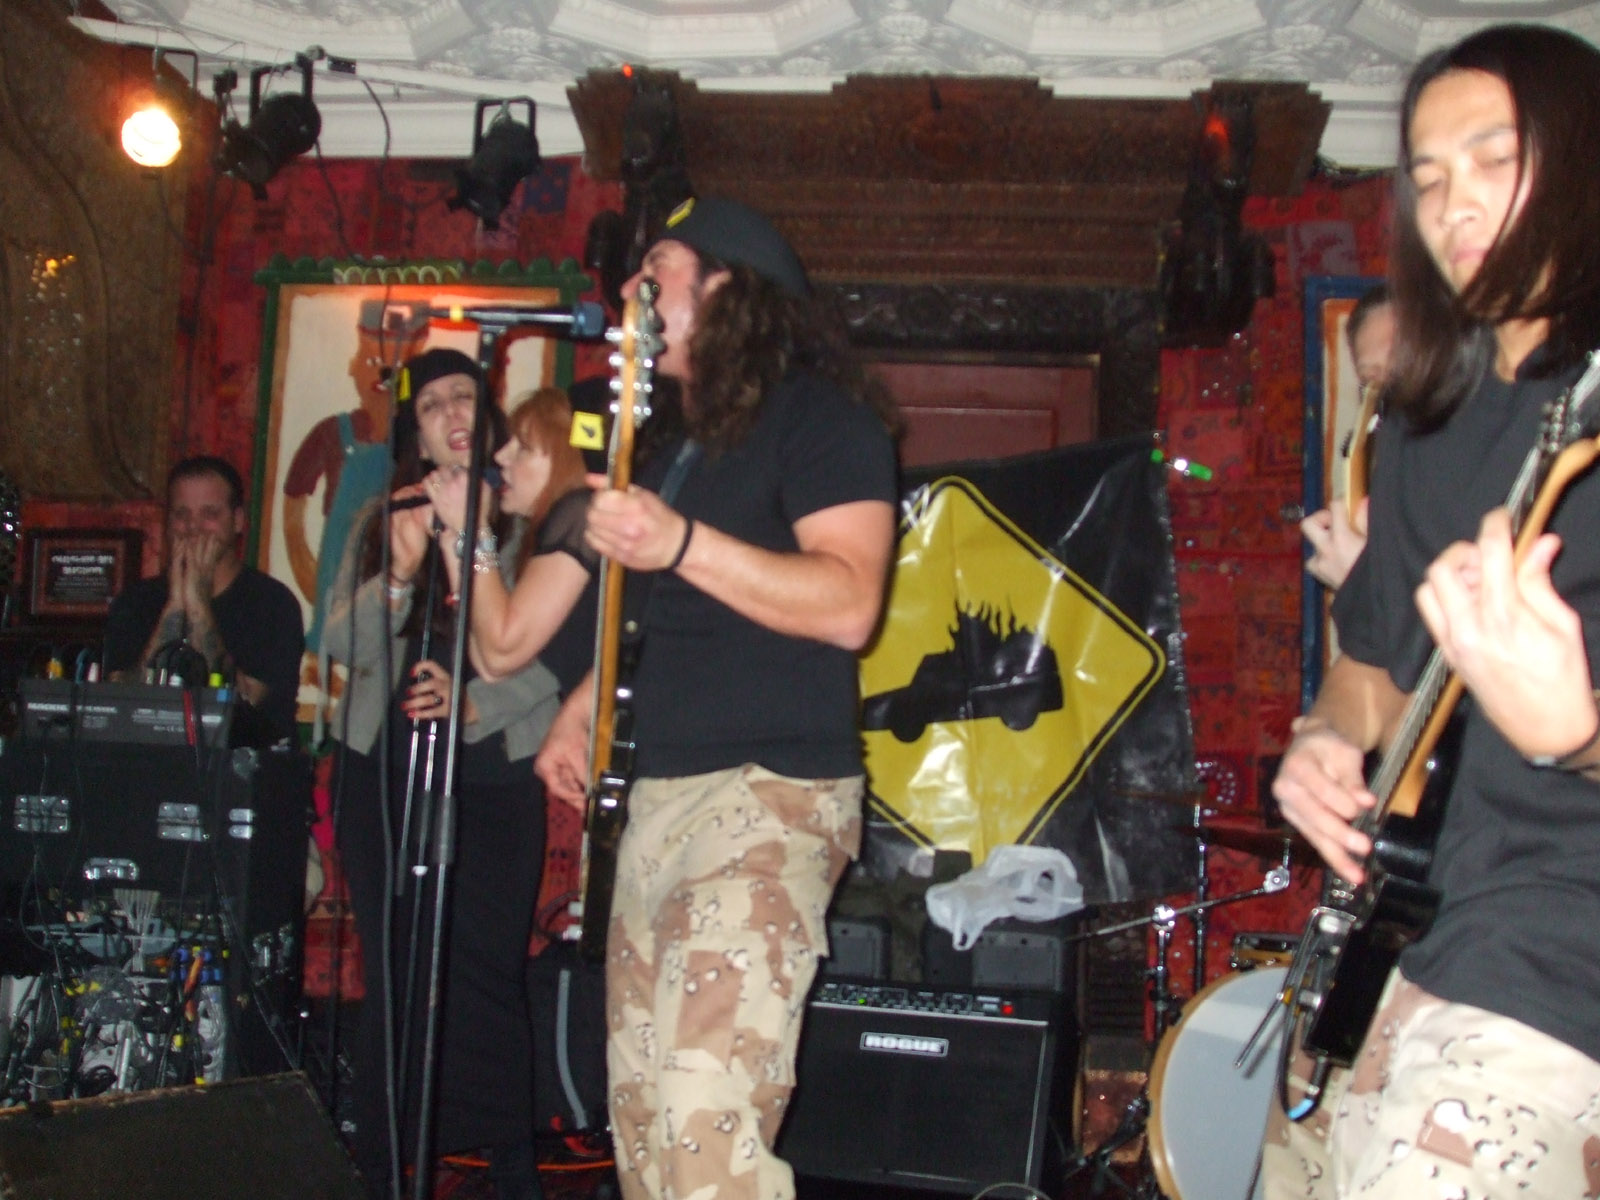 """House Of Blues """"Voodoo Lounge"""" (1-28-08  W.Hollywood, CA)  photo by Myra Gallarza"""